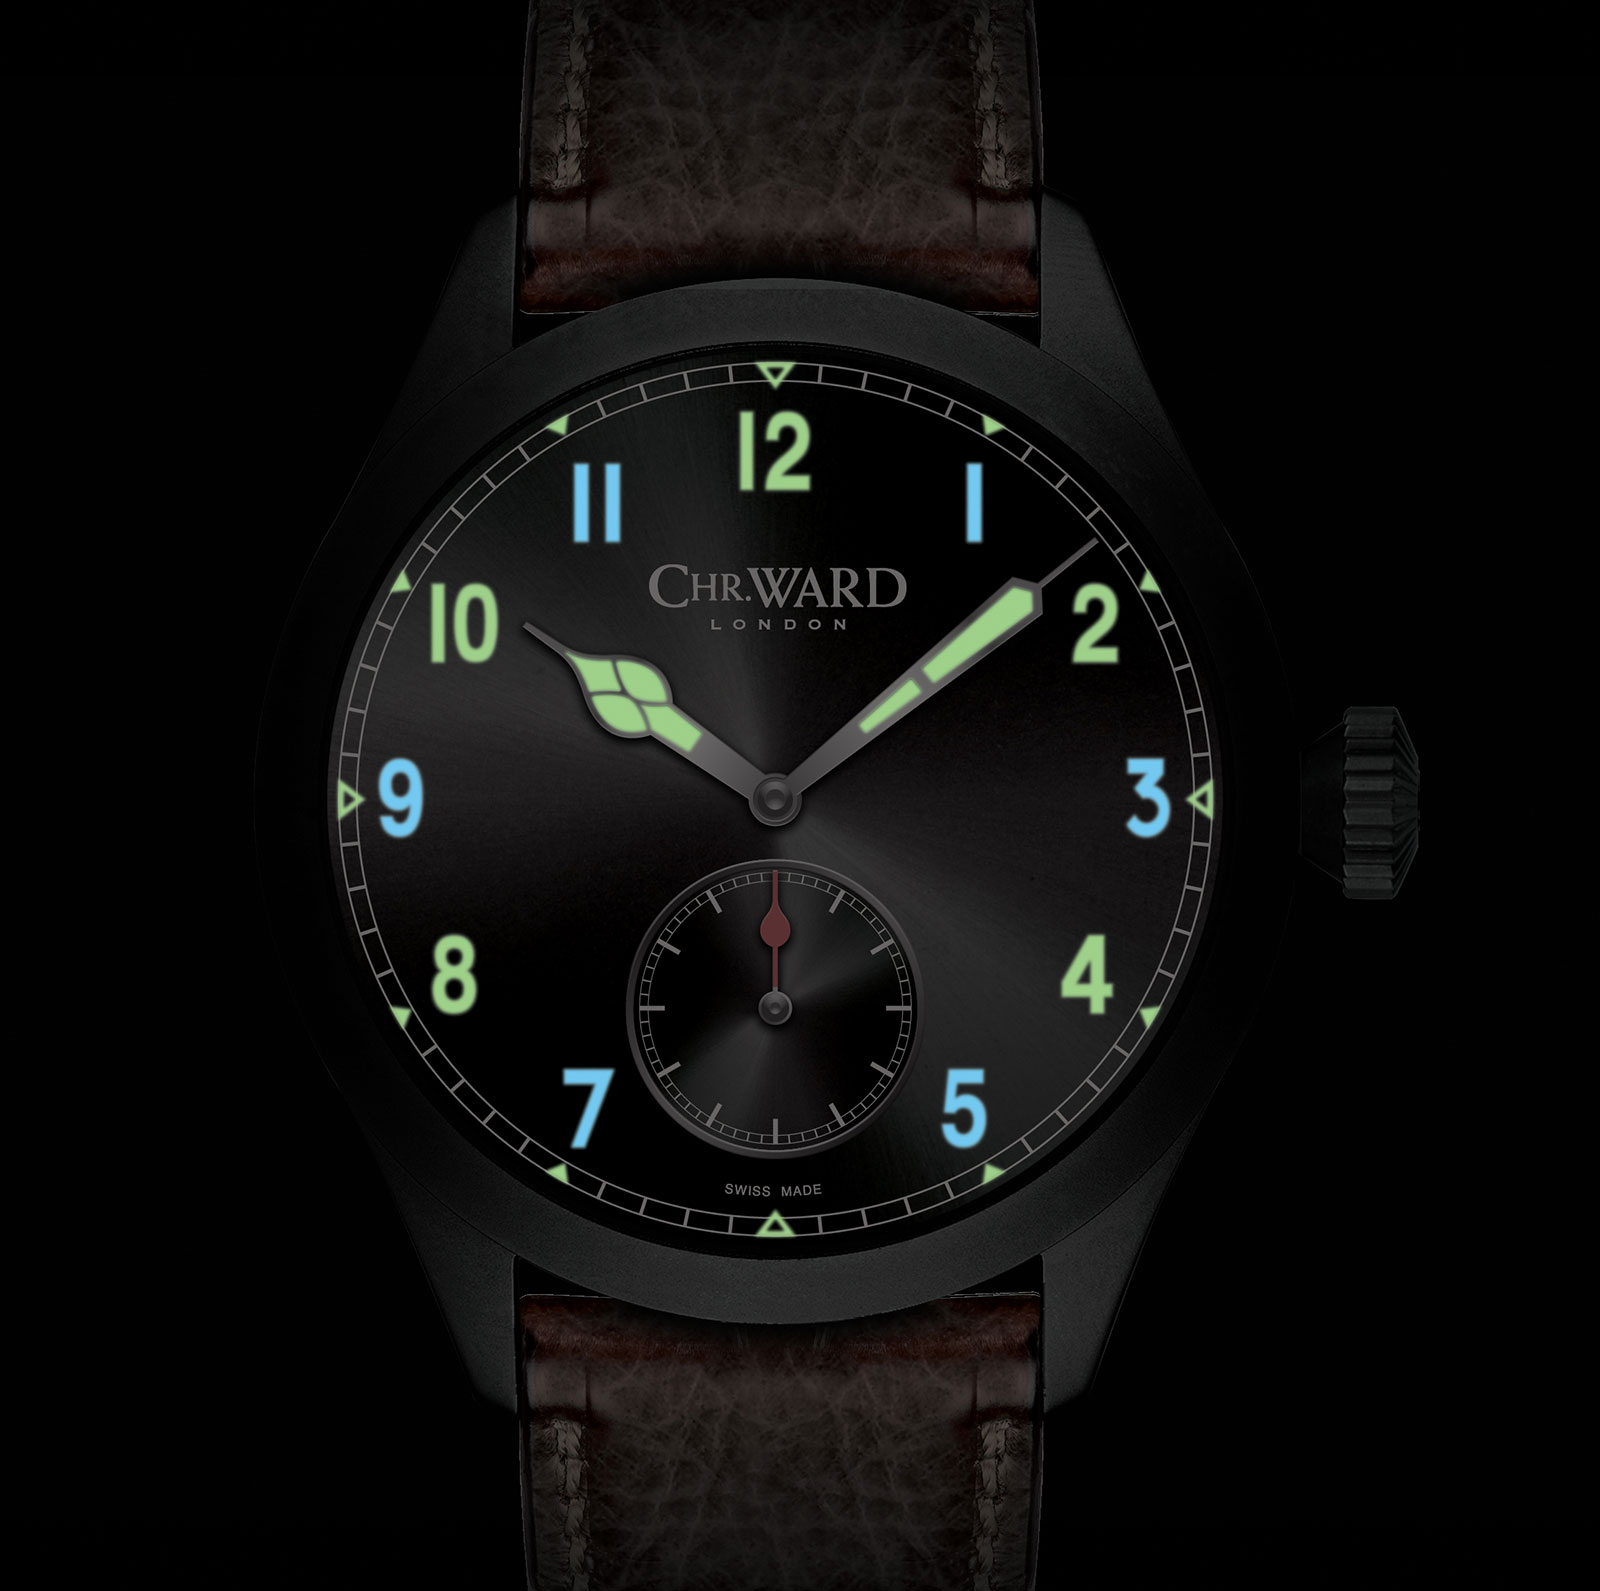 Christopher Ward C8 P7350 Chronometer 2